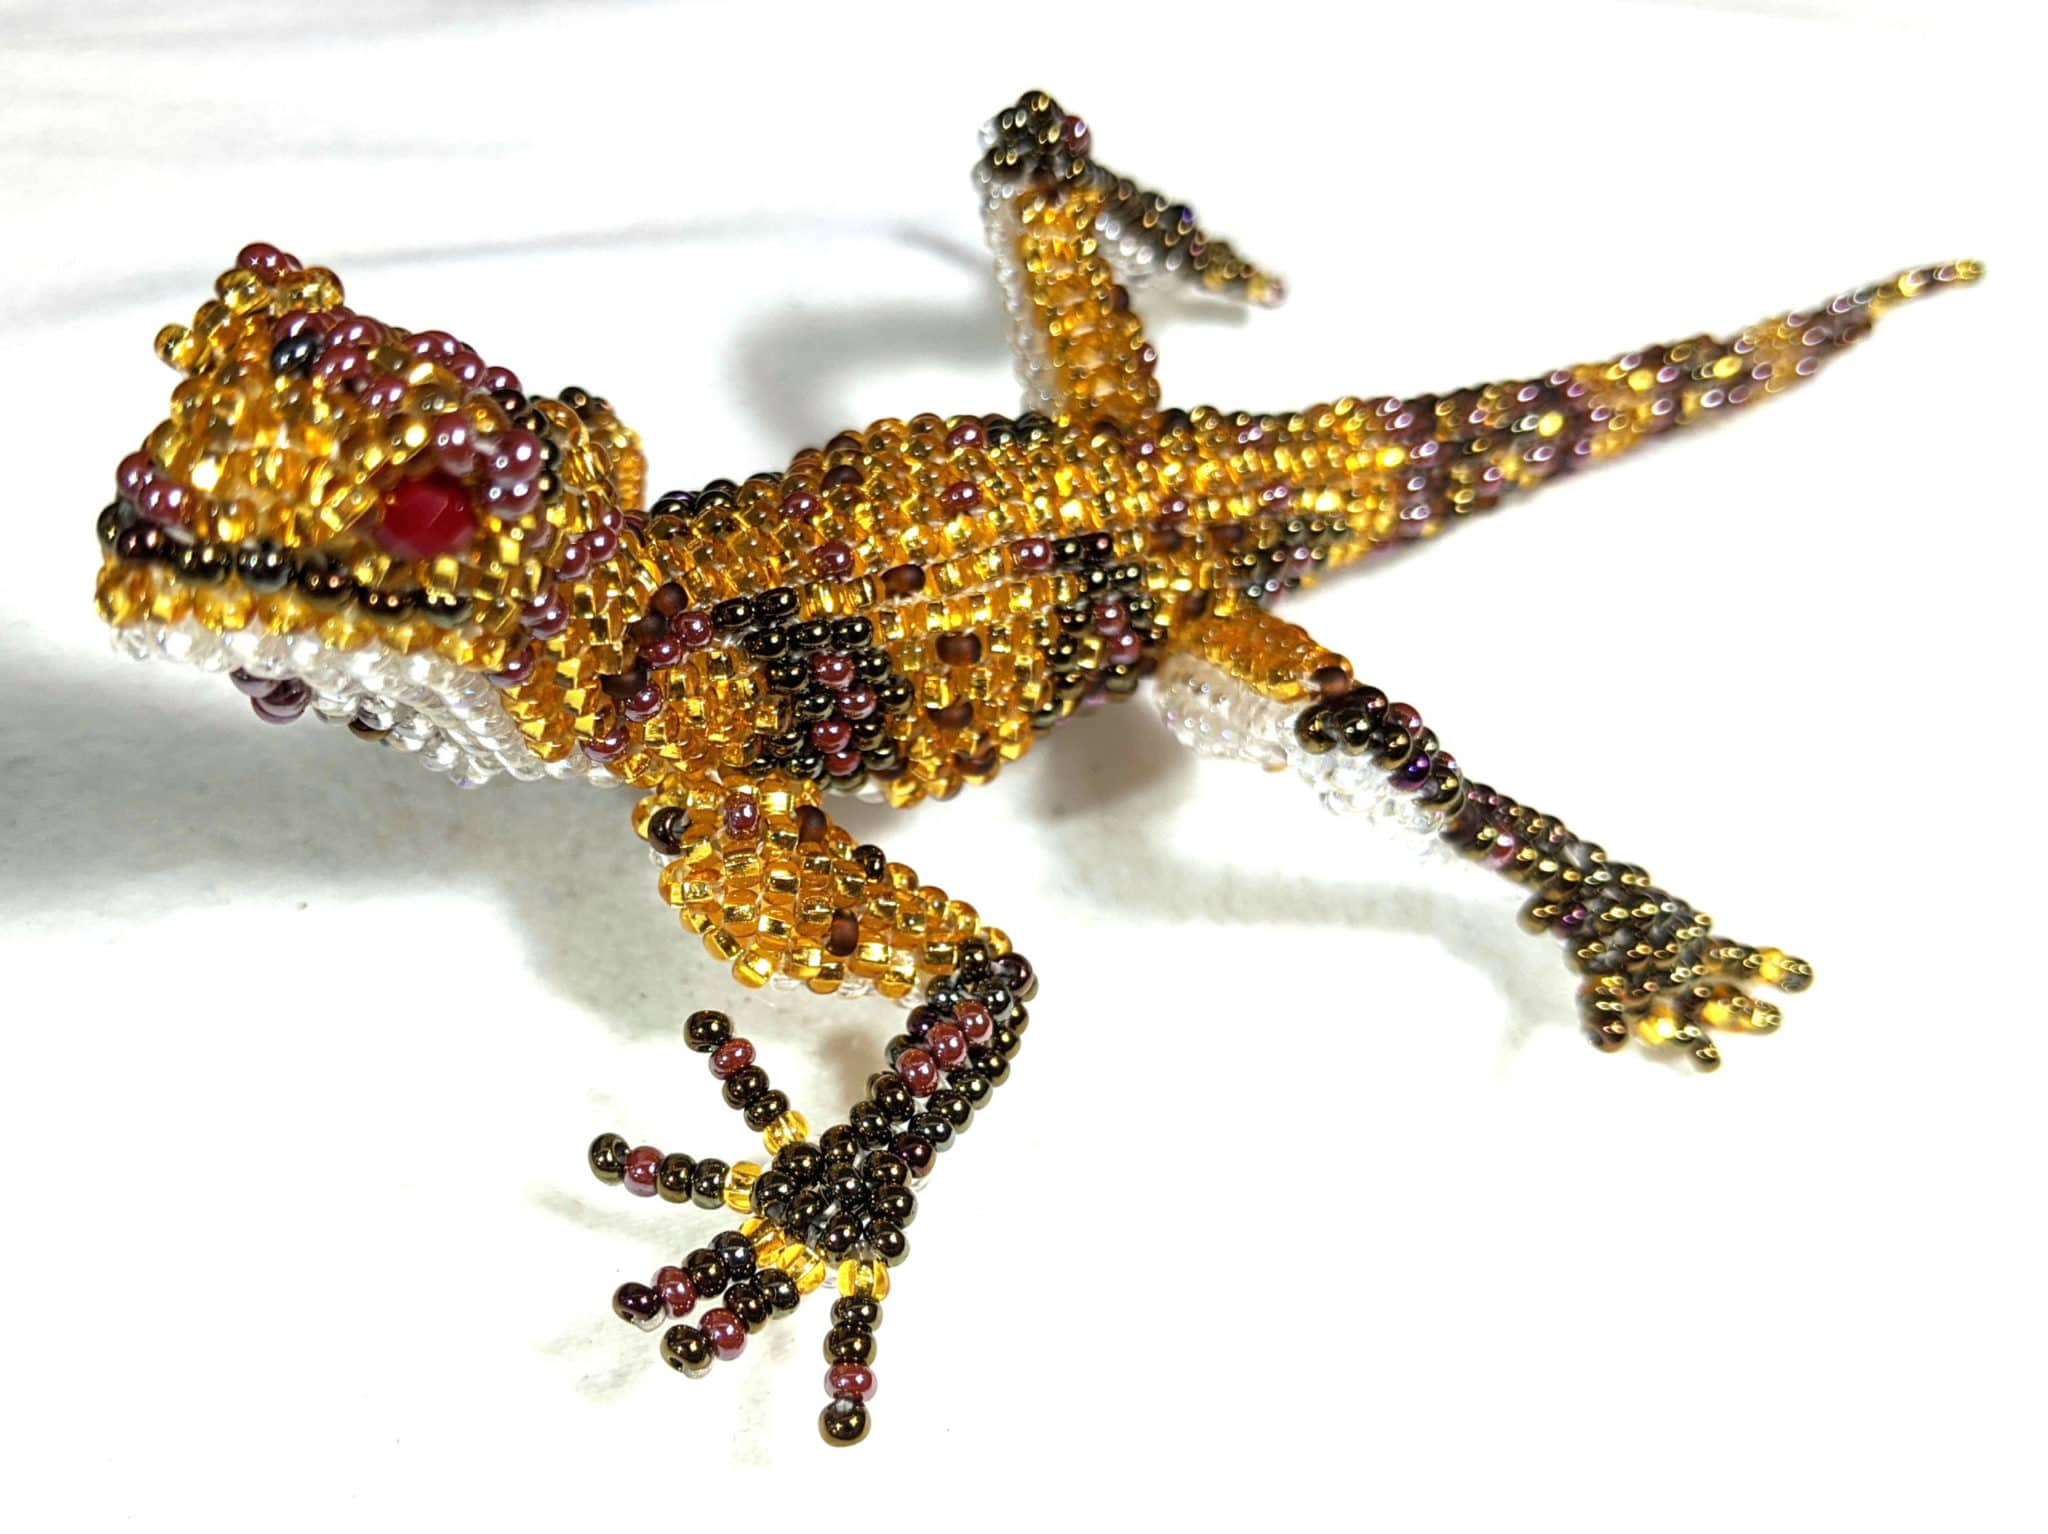 Gecko Beaded Pin - Golds